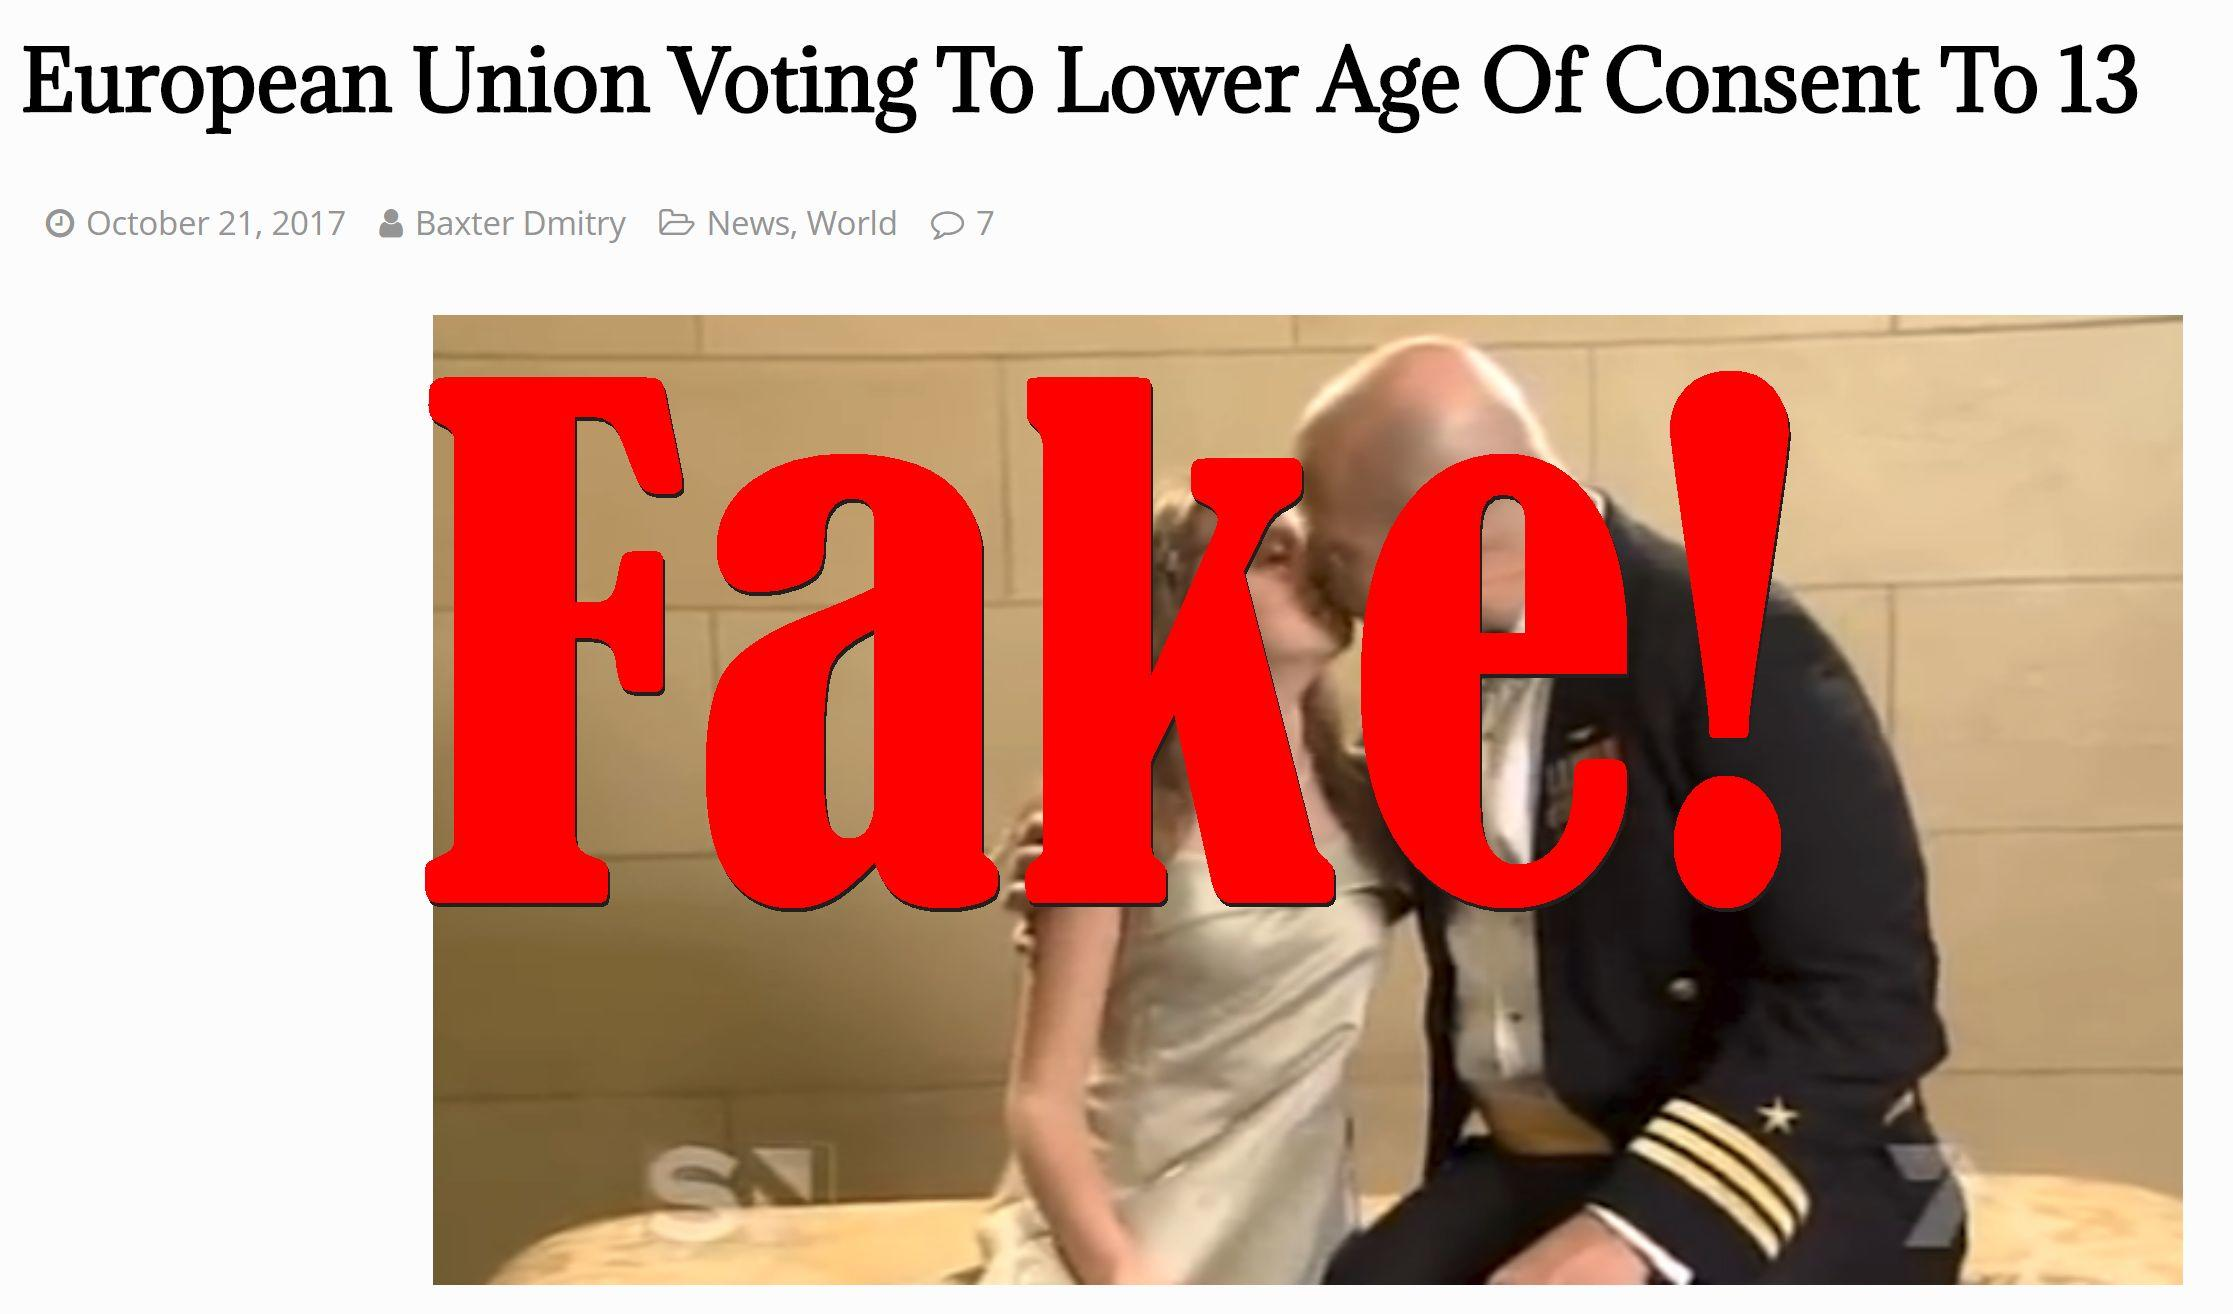 Fake News: European Union NOT Voting To Lower Age Of Consent To 13